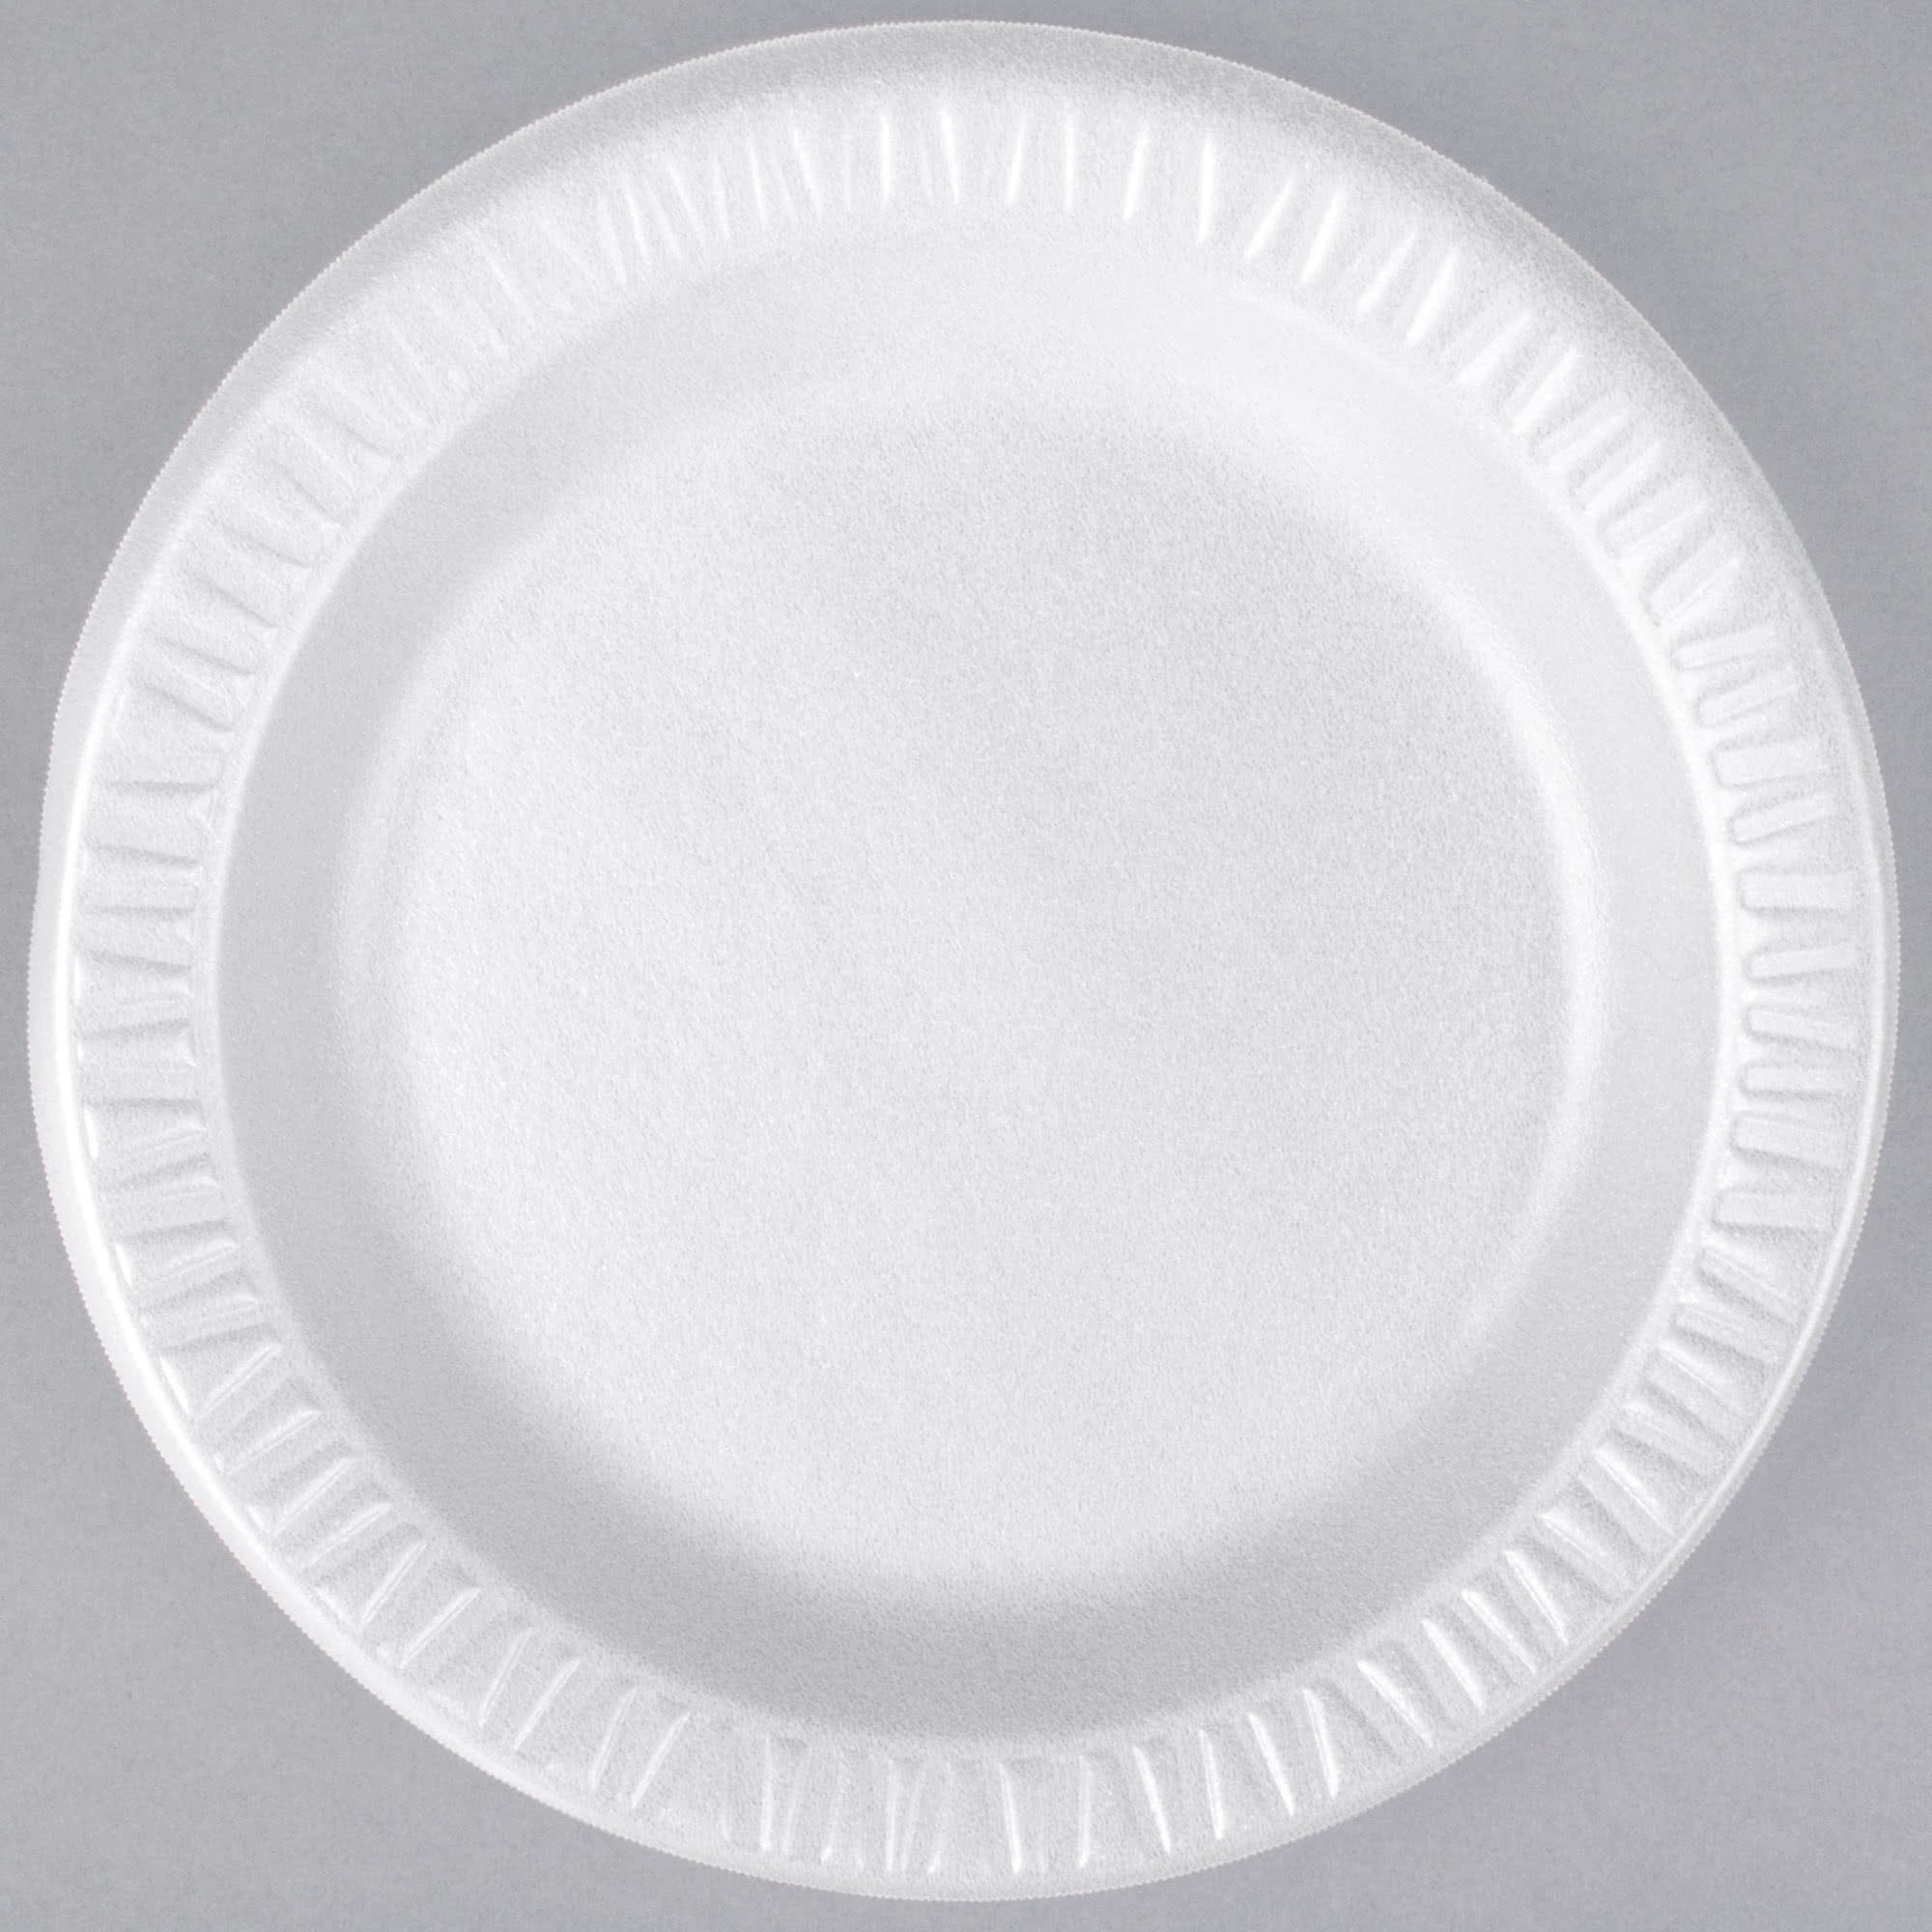 TableTop King 7PWQR Quiet Classic 7'' White Laminated Round Foam Plate - 1000/Case by TableTop King